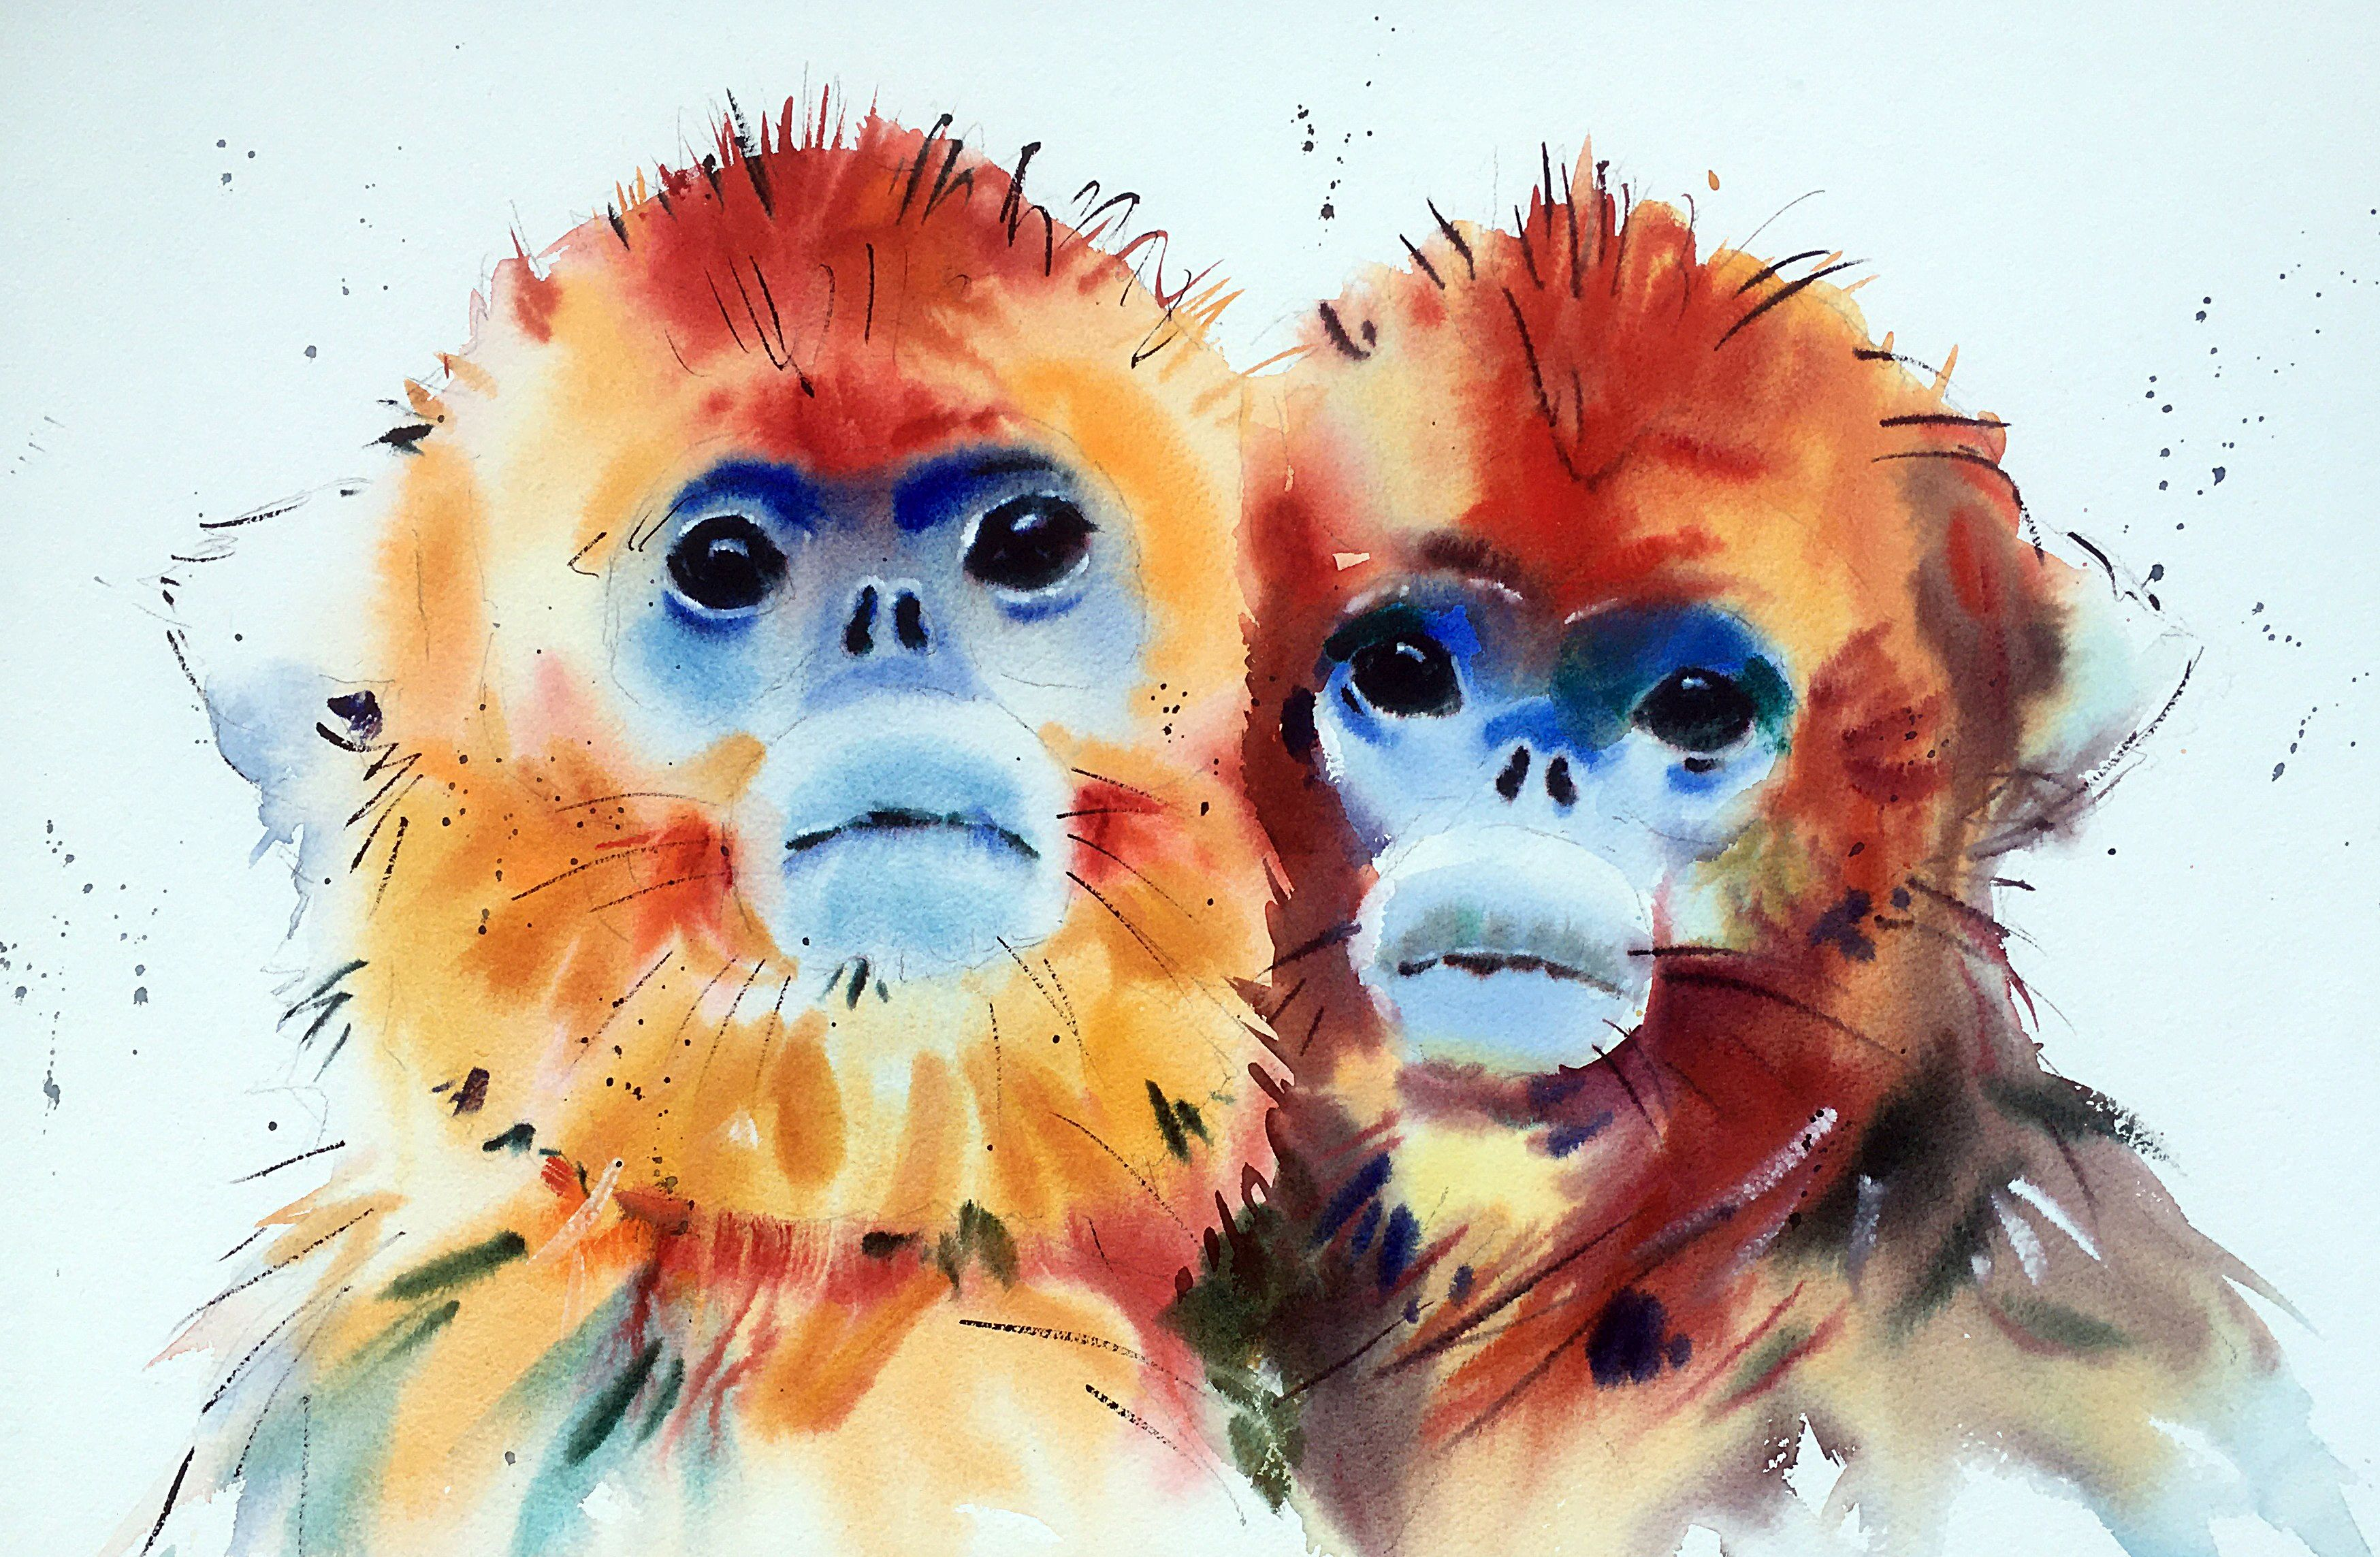 Snub Nose Monkeys